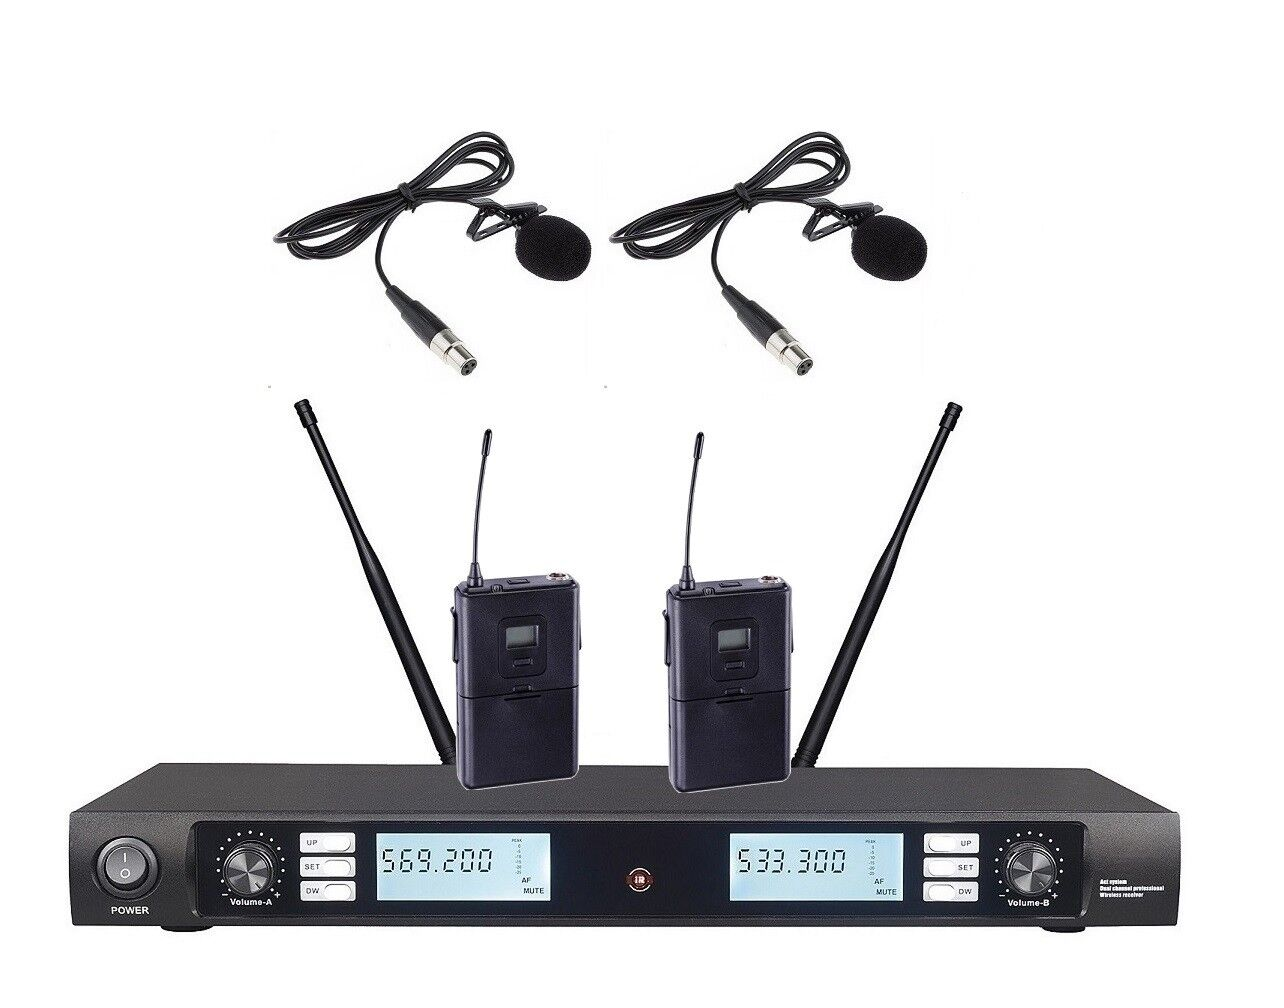 UHF Wireless Microphone Karaoke Professional 2 Lapel Microphone System For Shure